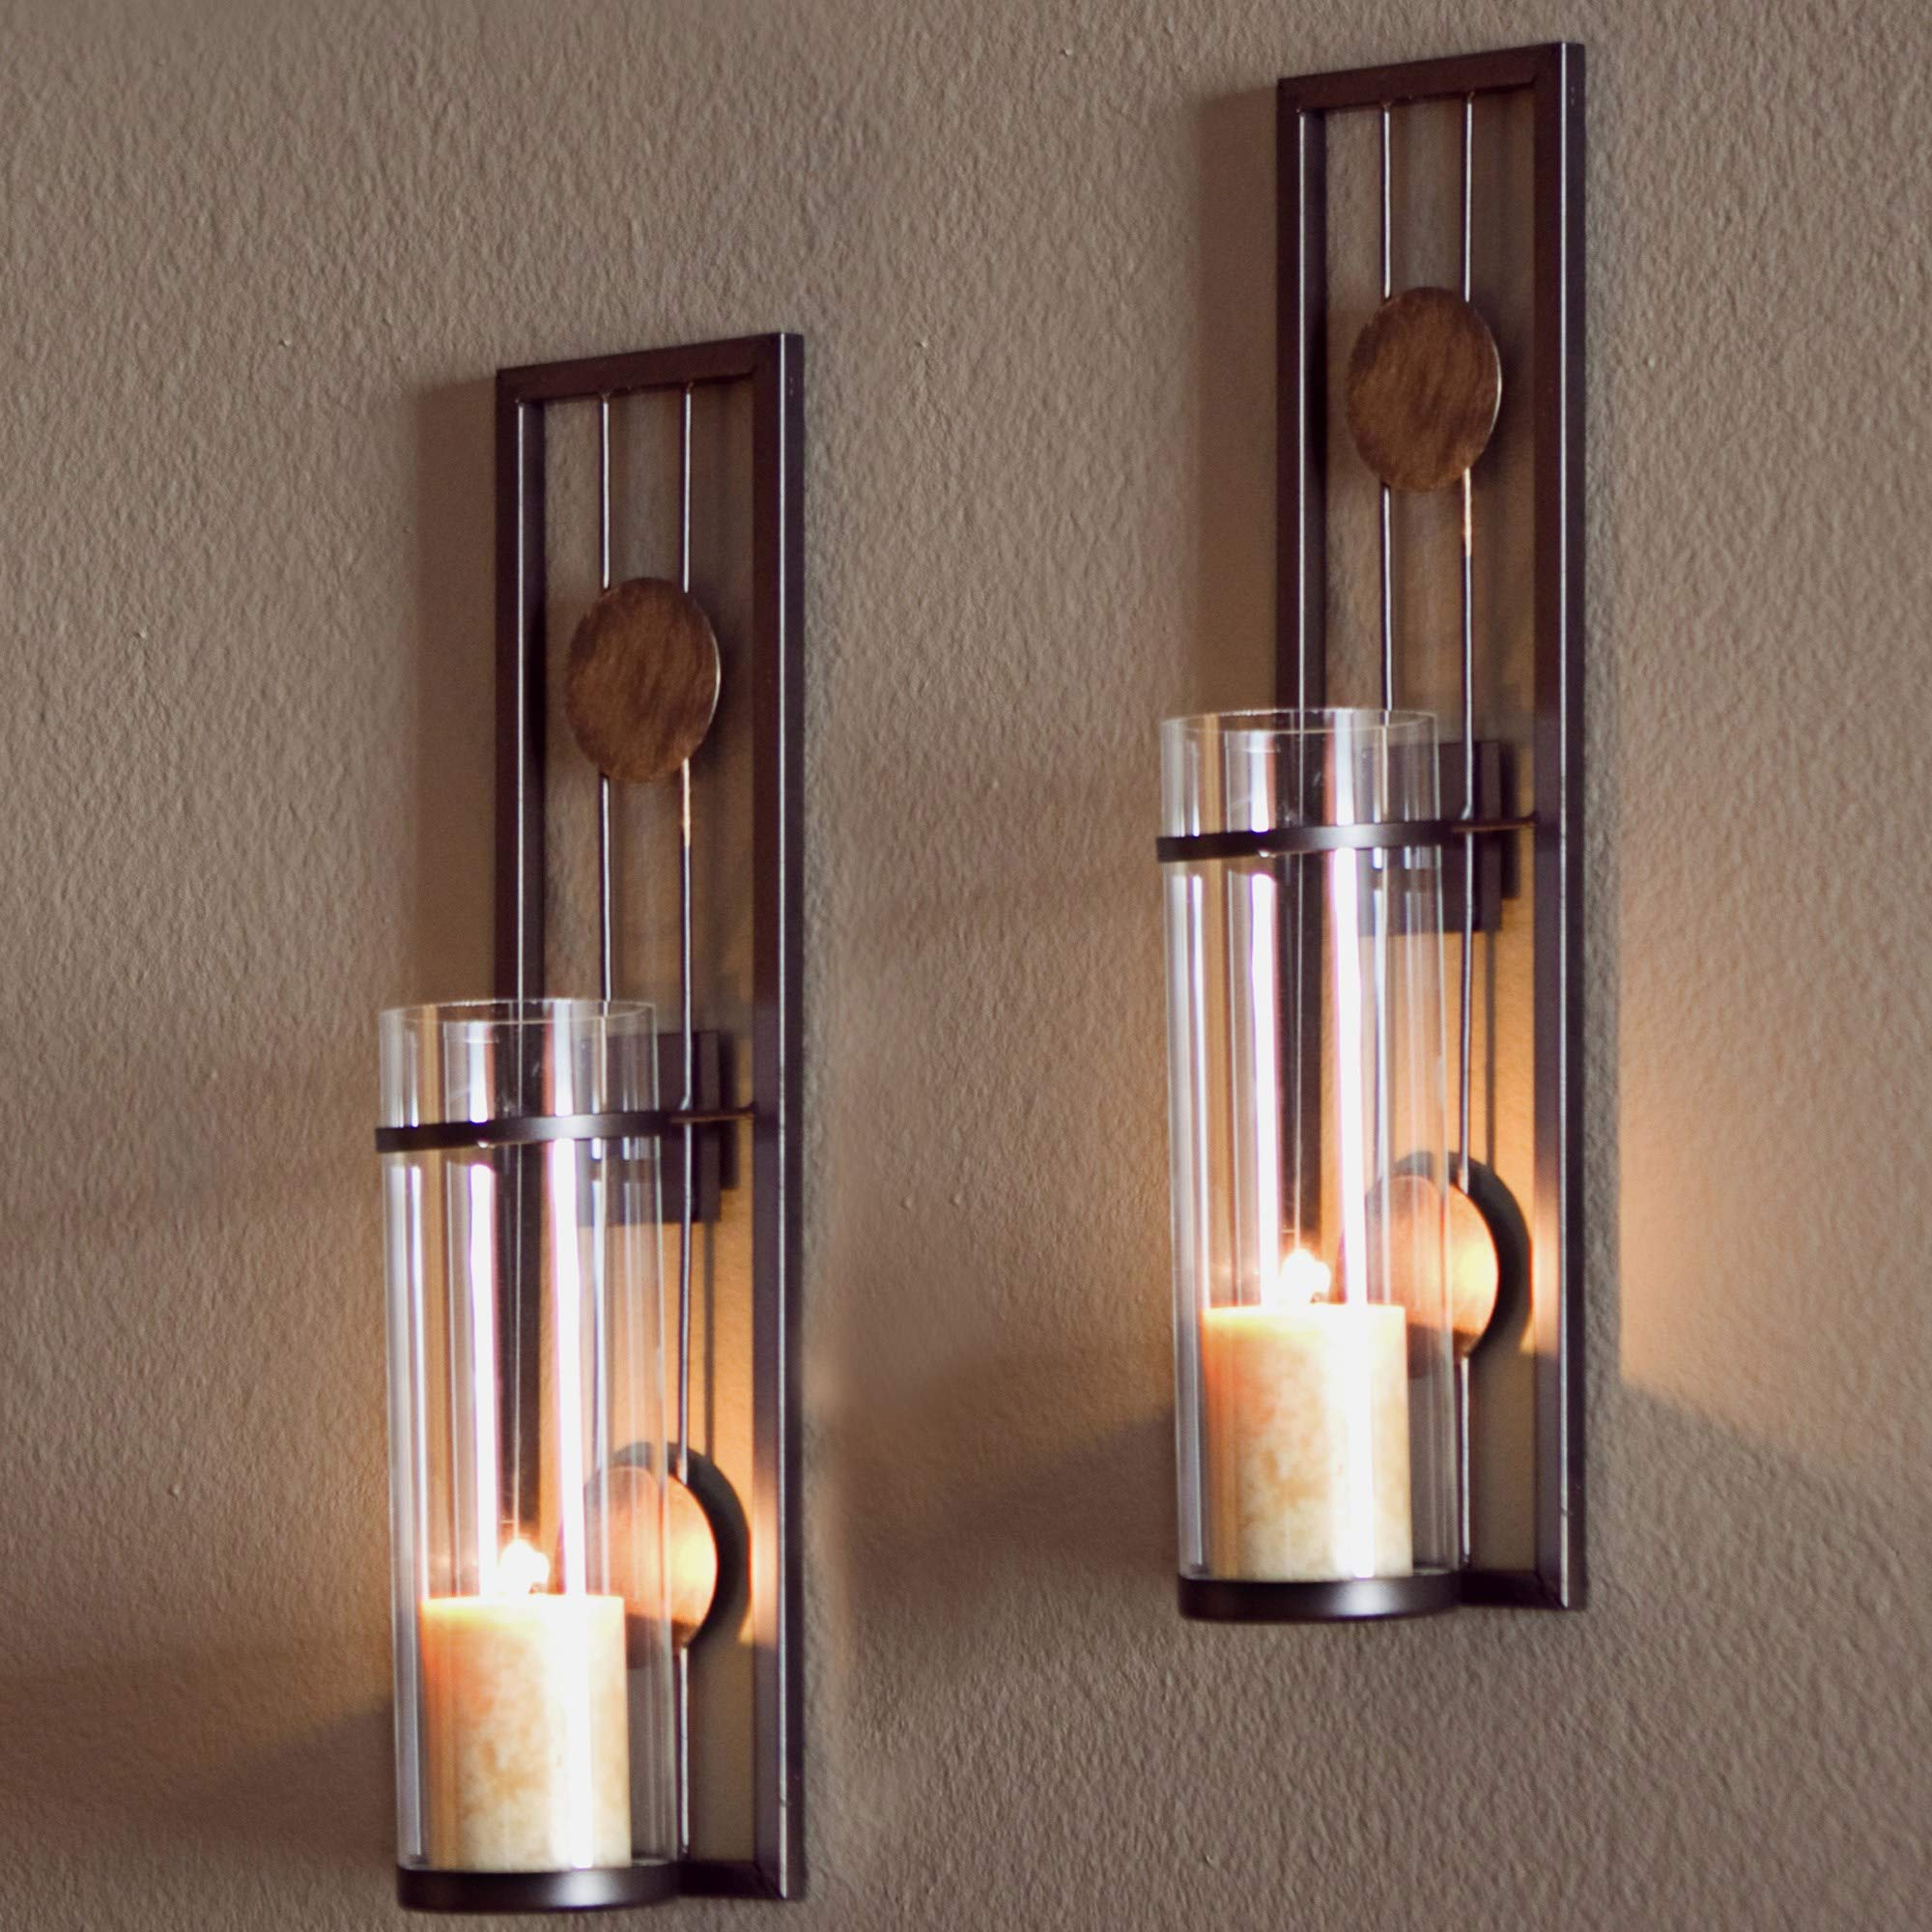 2 Piece Brown Tan Candle Holders Metal Sconce Set Modern Contemporary Wall Sconces Candles Warm Romantic Ambiance Elegant Geometric Design Circle Pattern, Iron by MISC